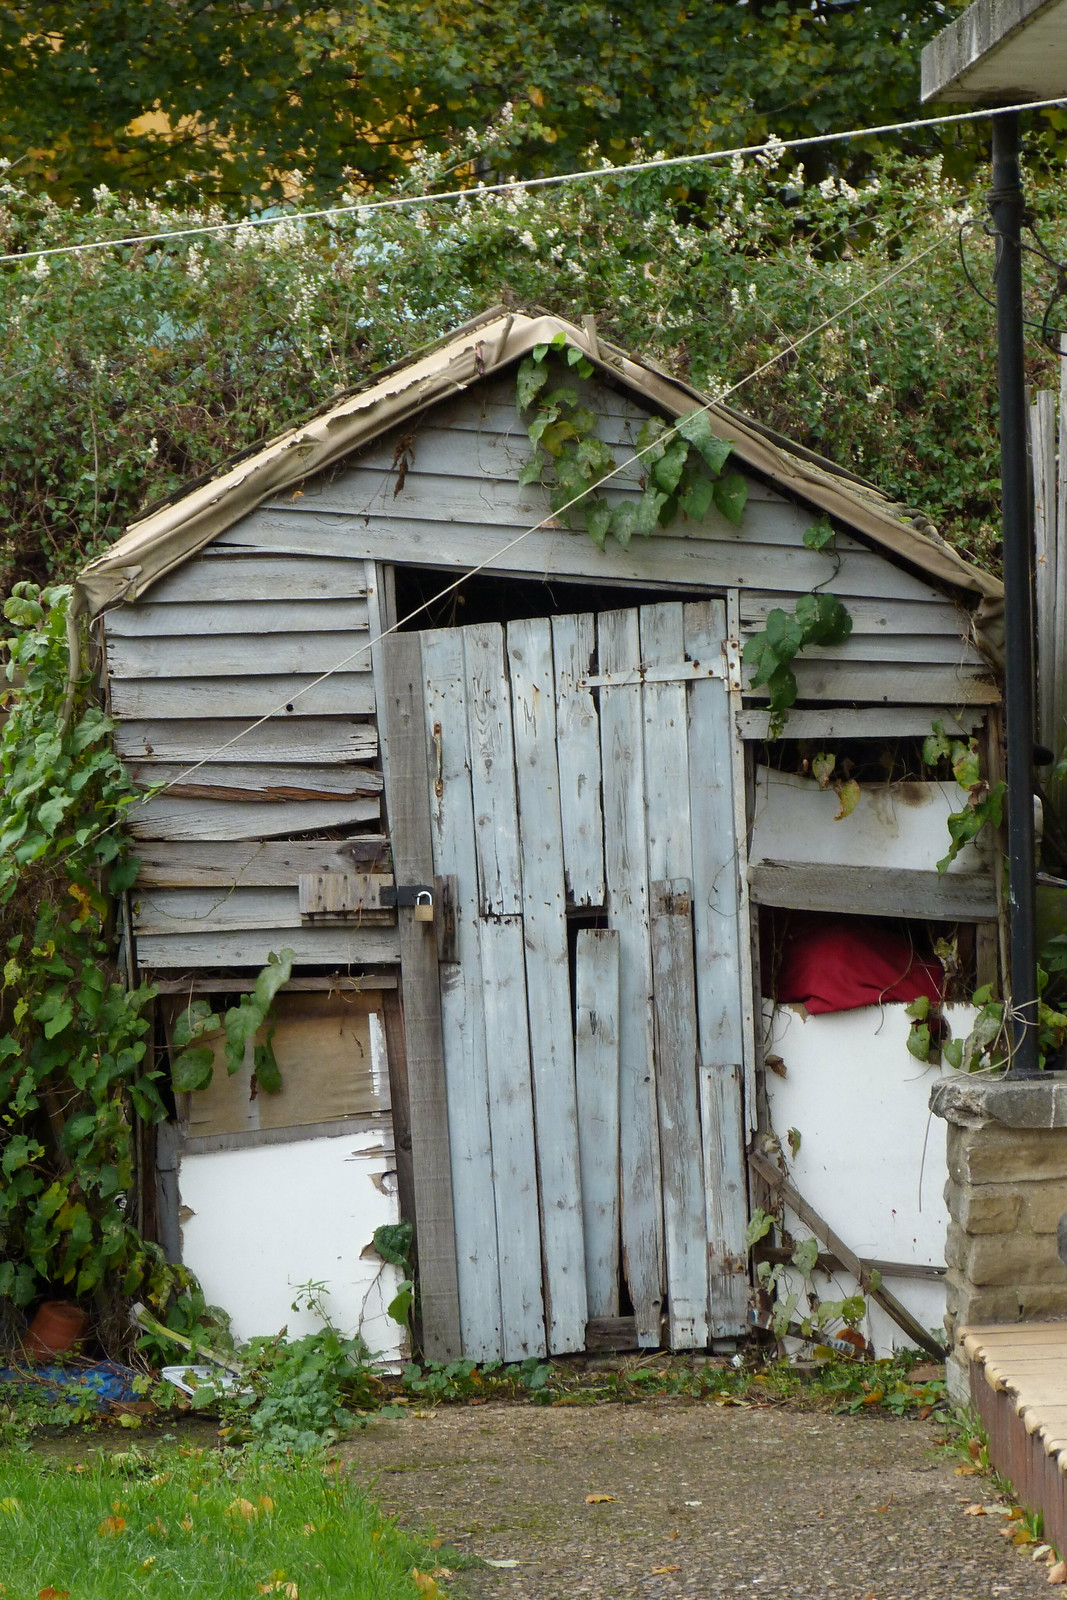 Tears from a small boy in a shed